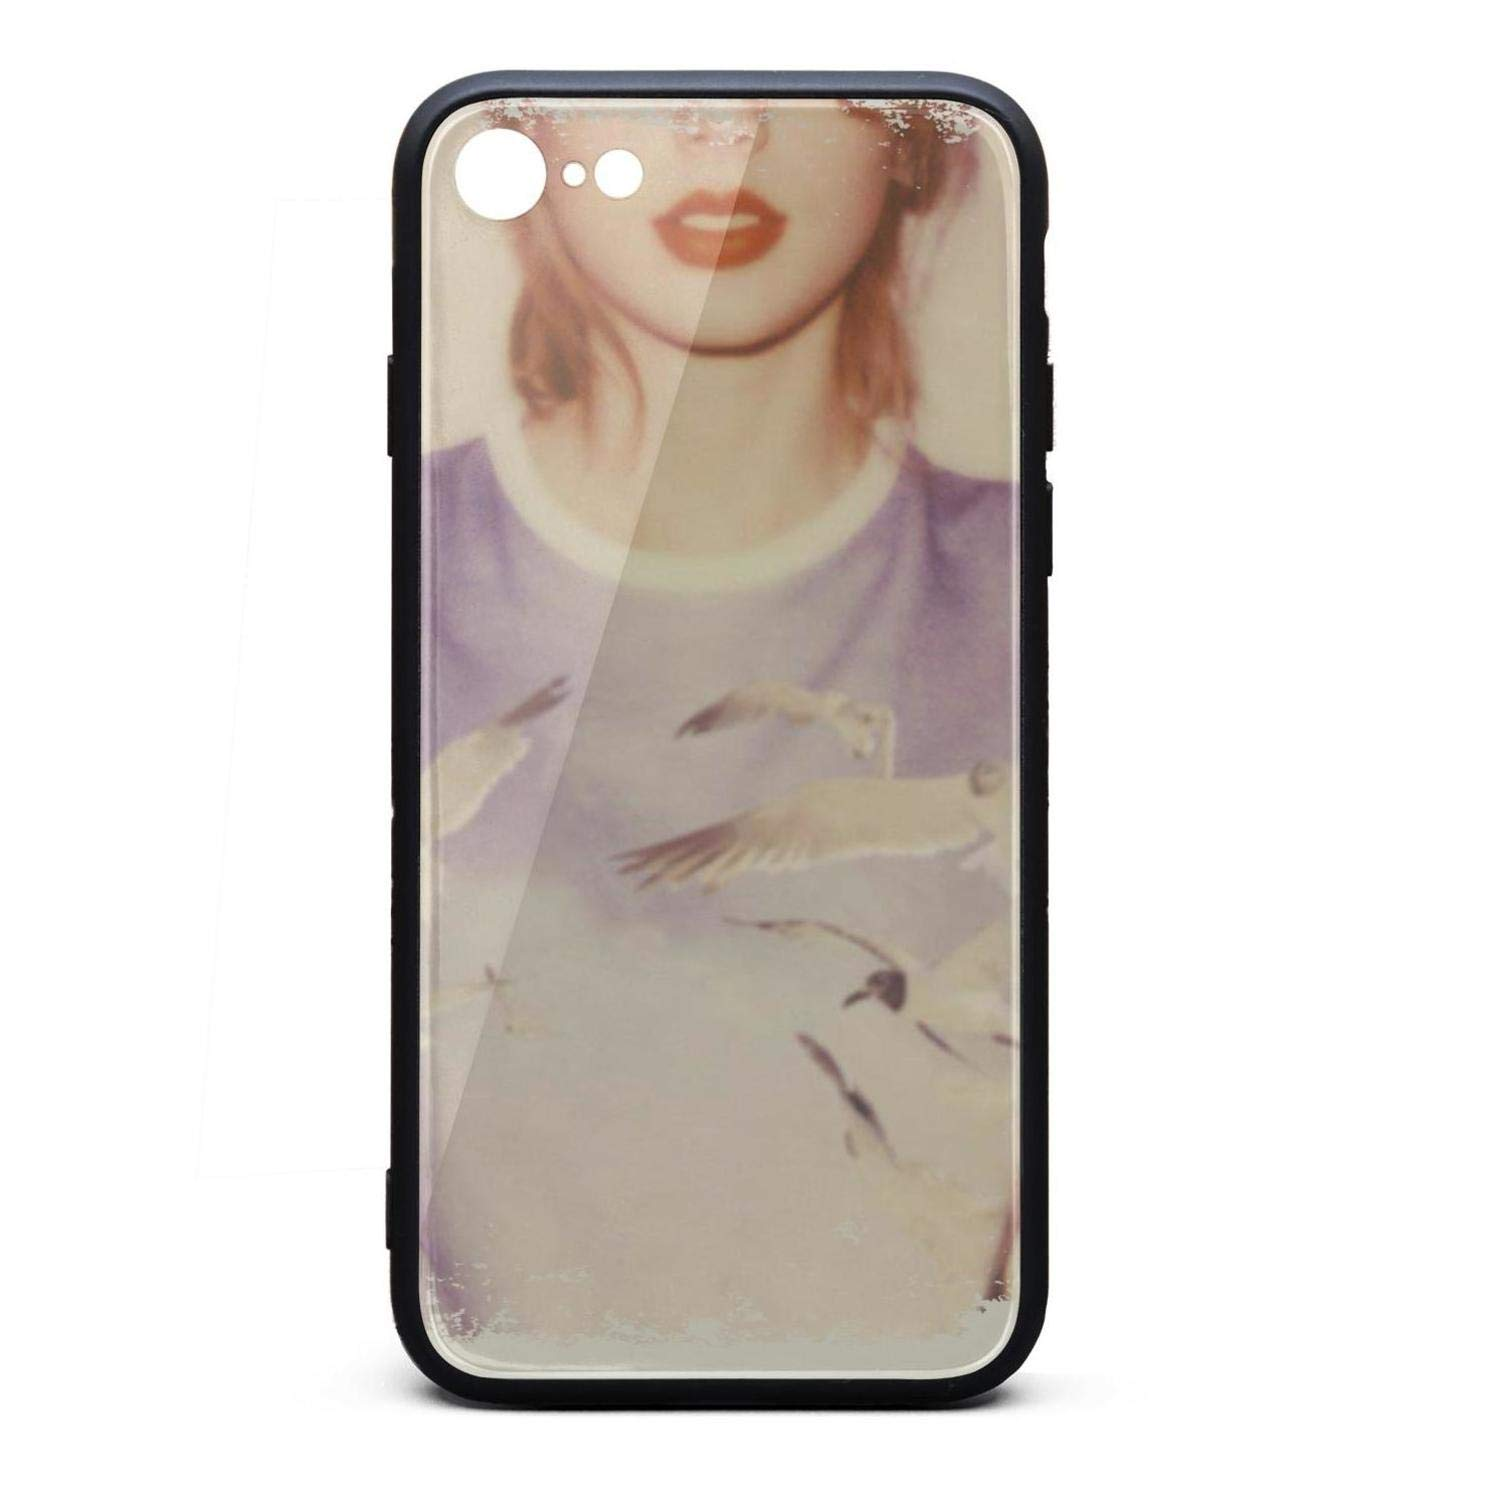 low priced 9455c 48230 Top 2 iphone 6 taylor swift case